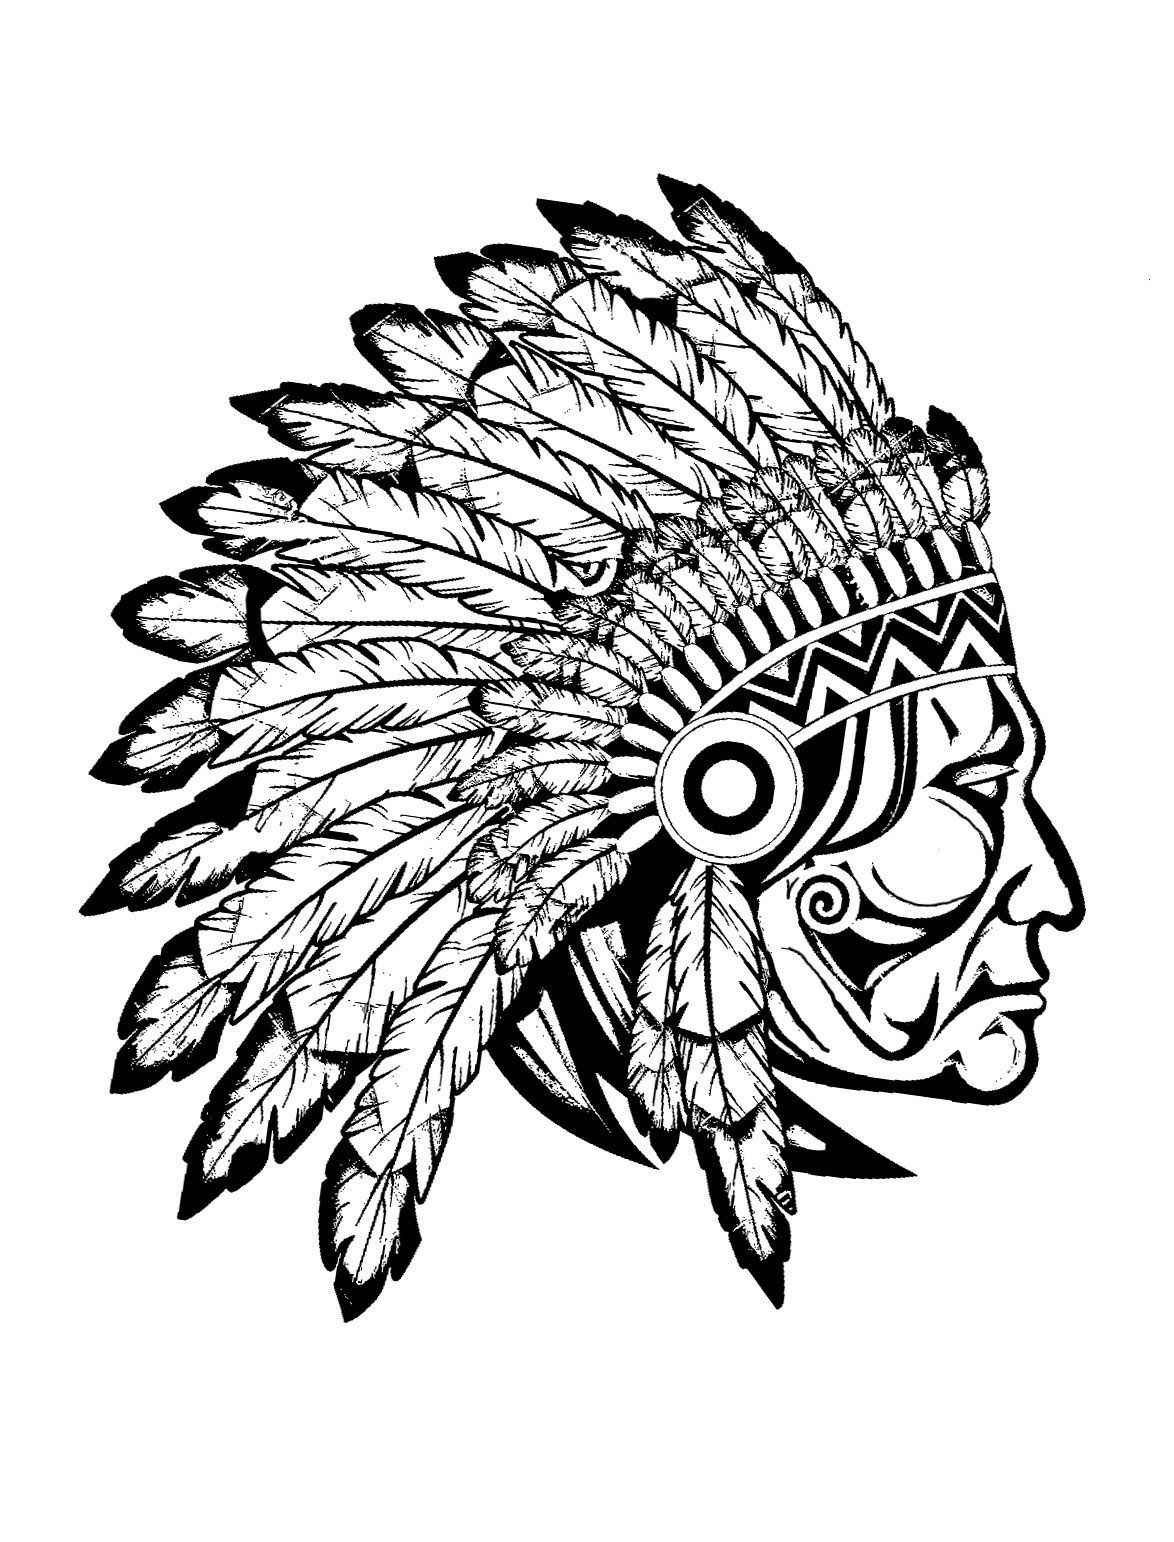 Native Americans Or American Indians Are People Whose